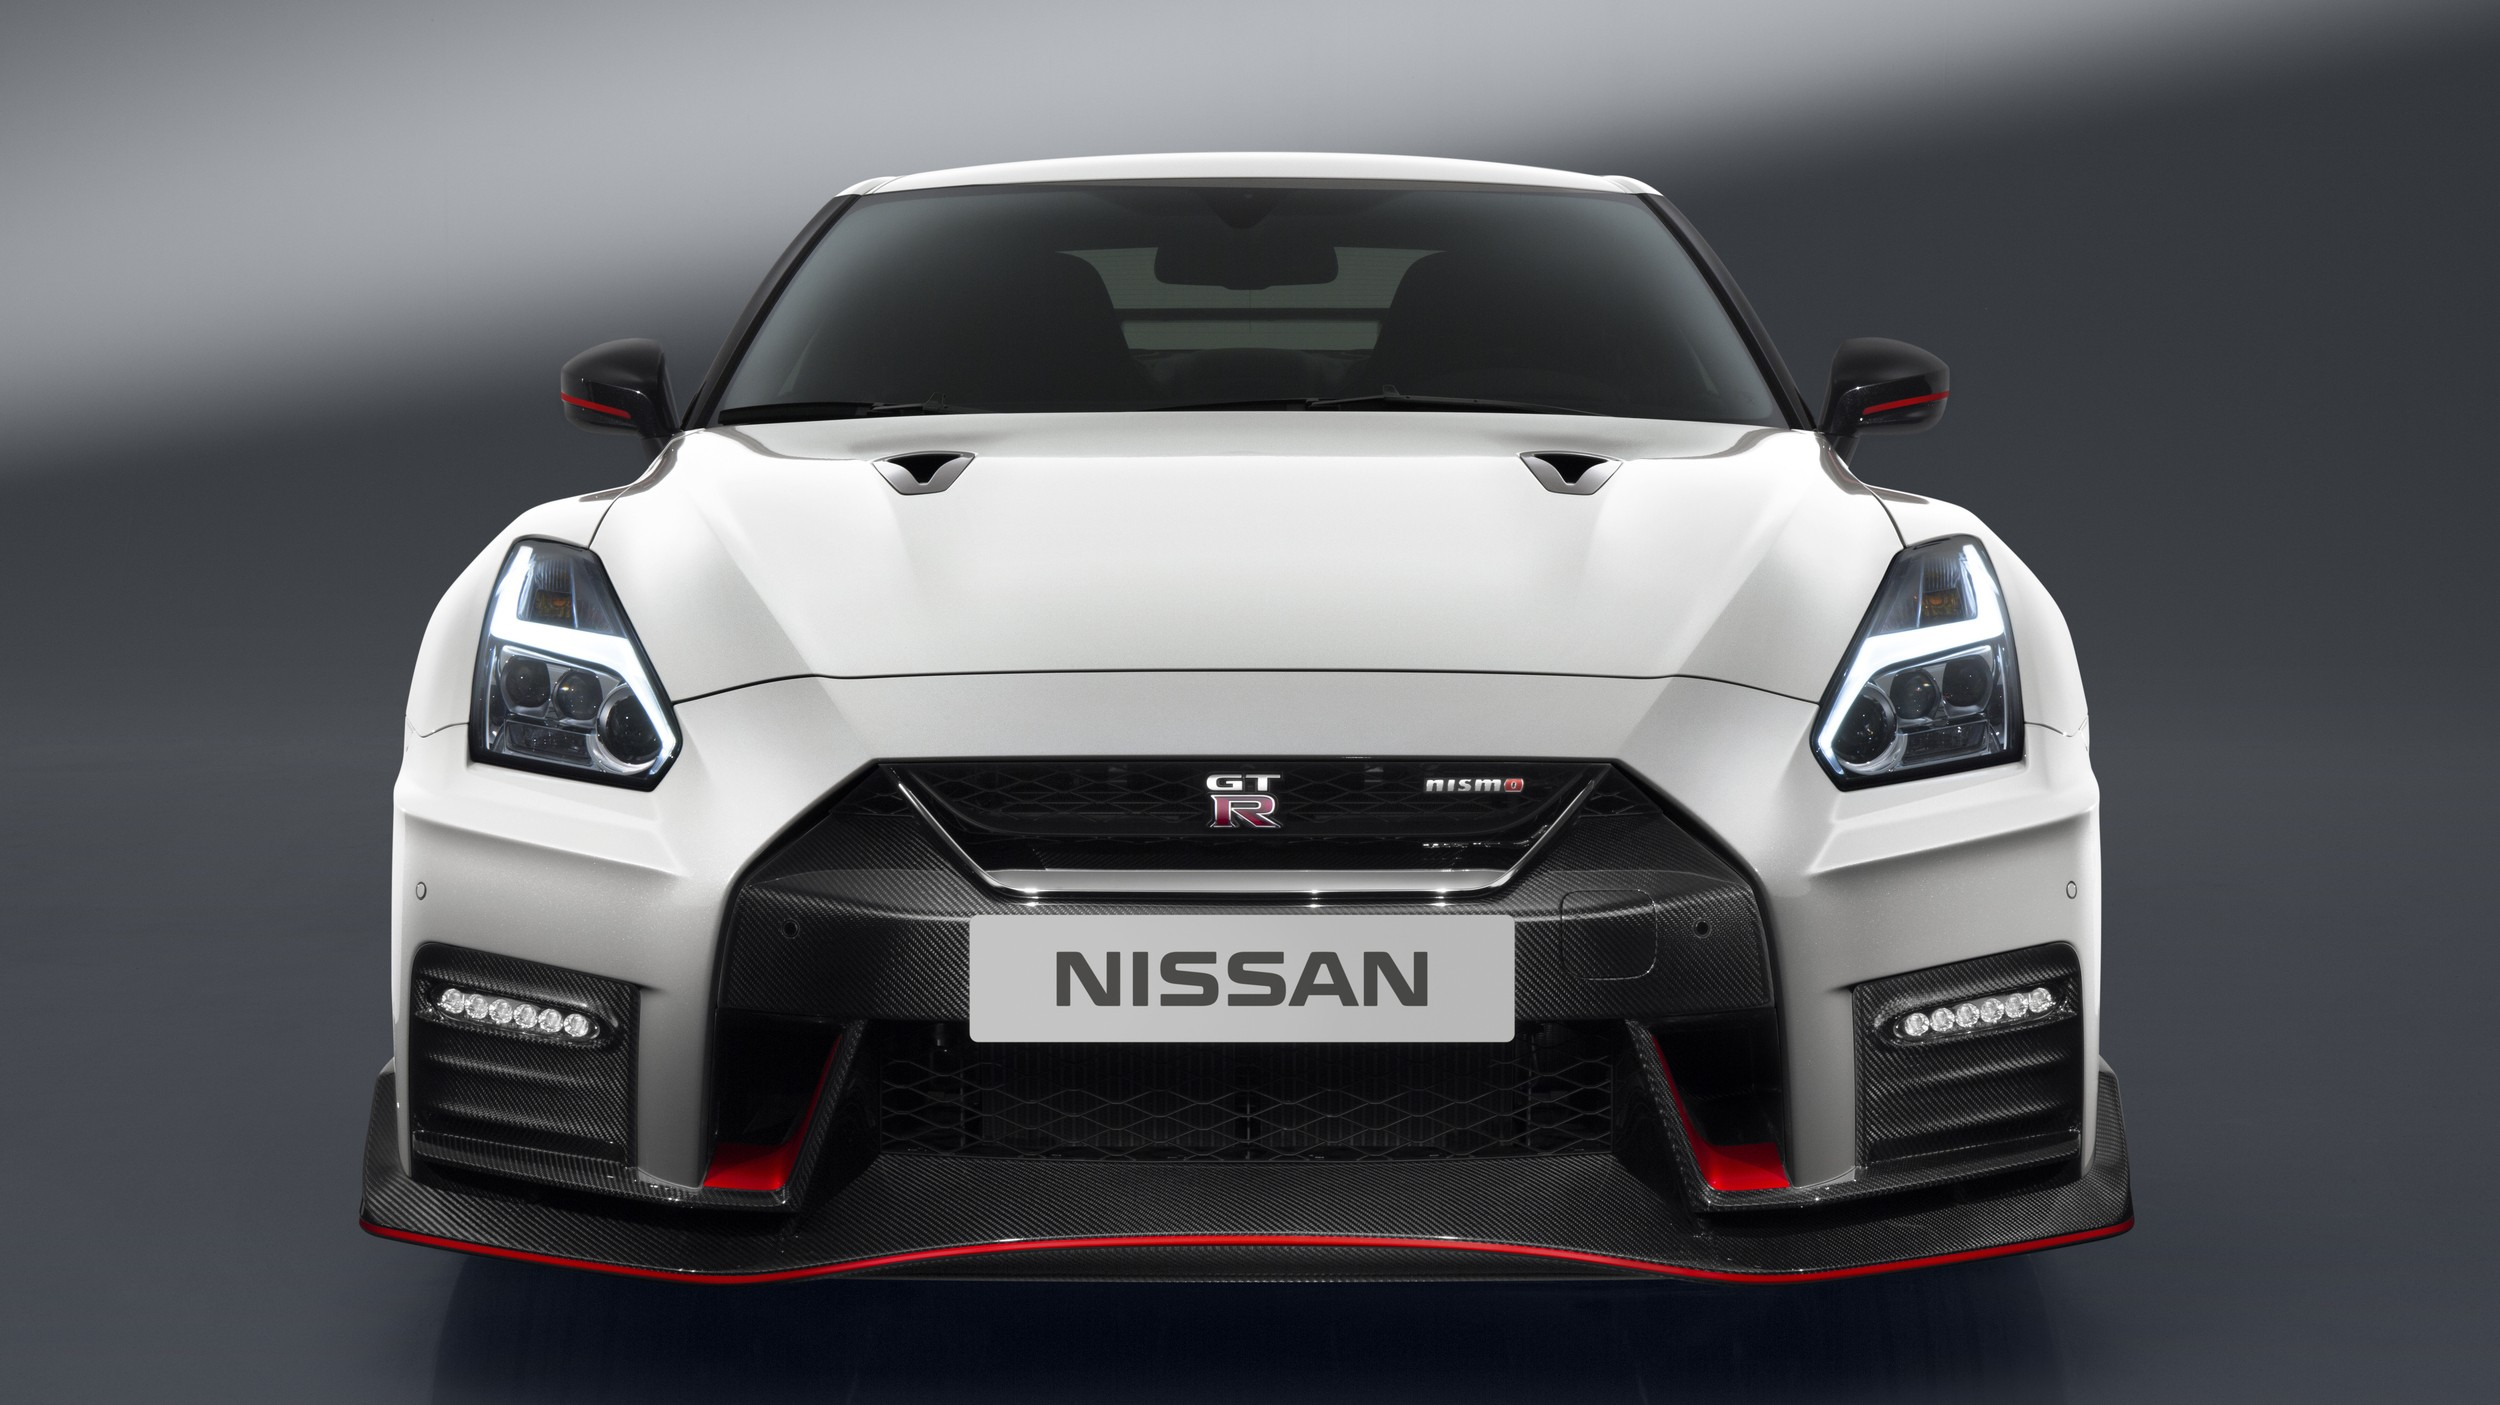 2021 Nissan GT-R - What We Know So Far - autoevolution